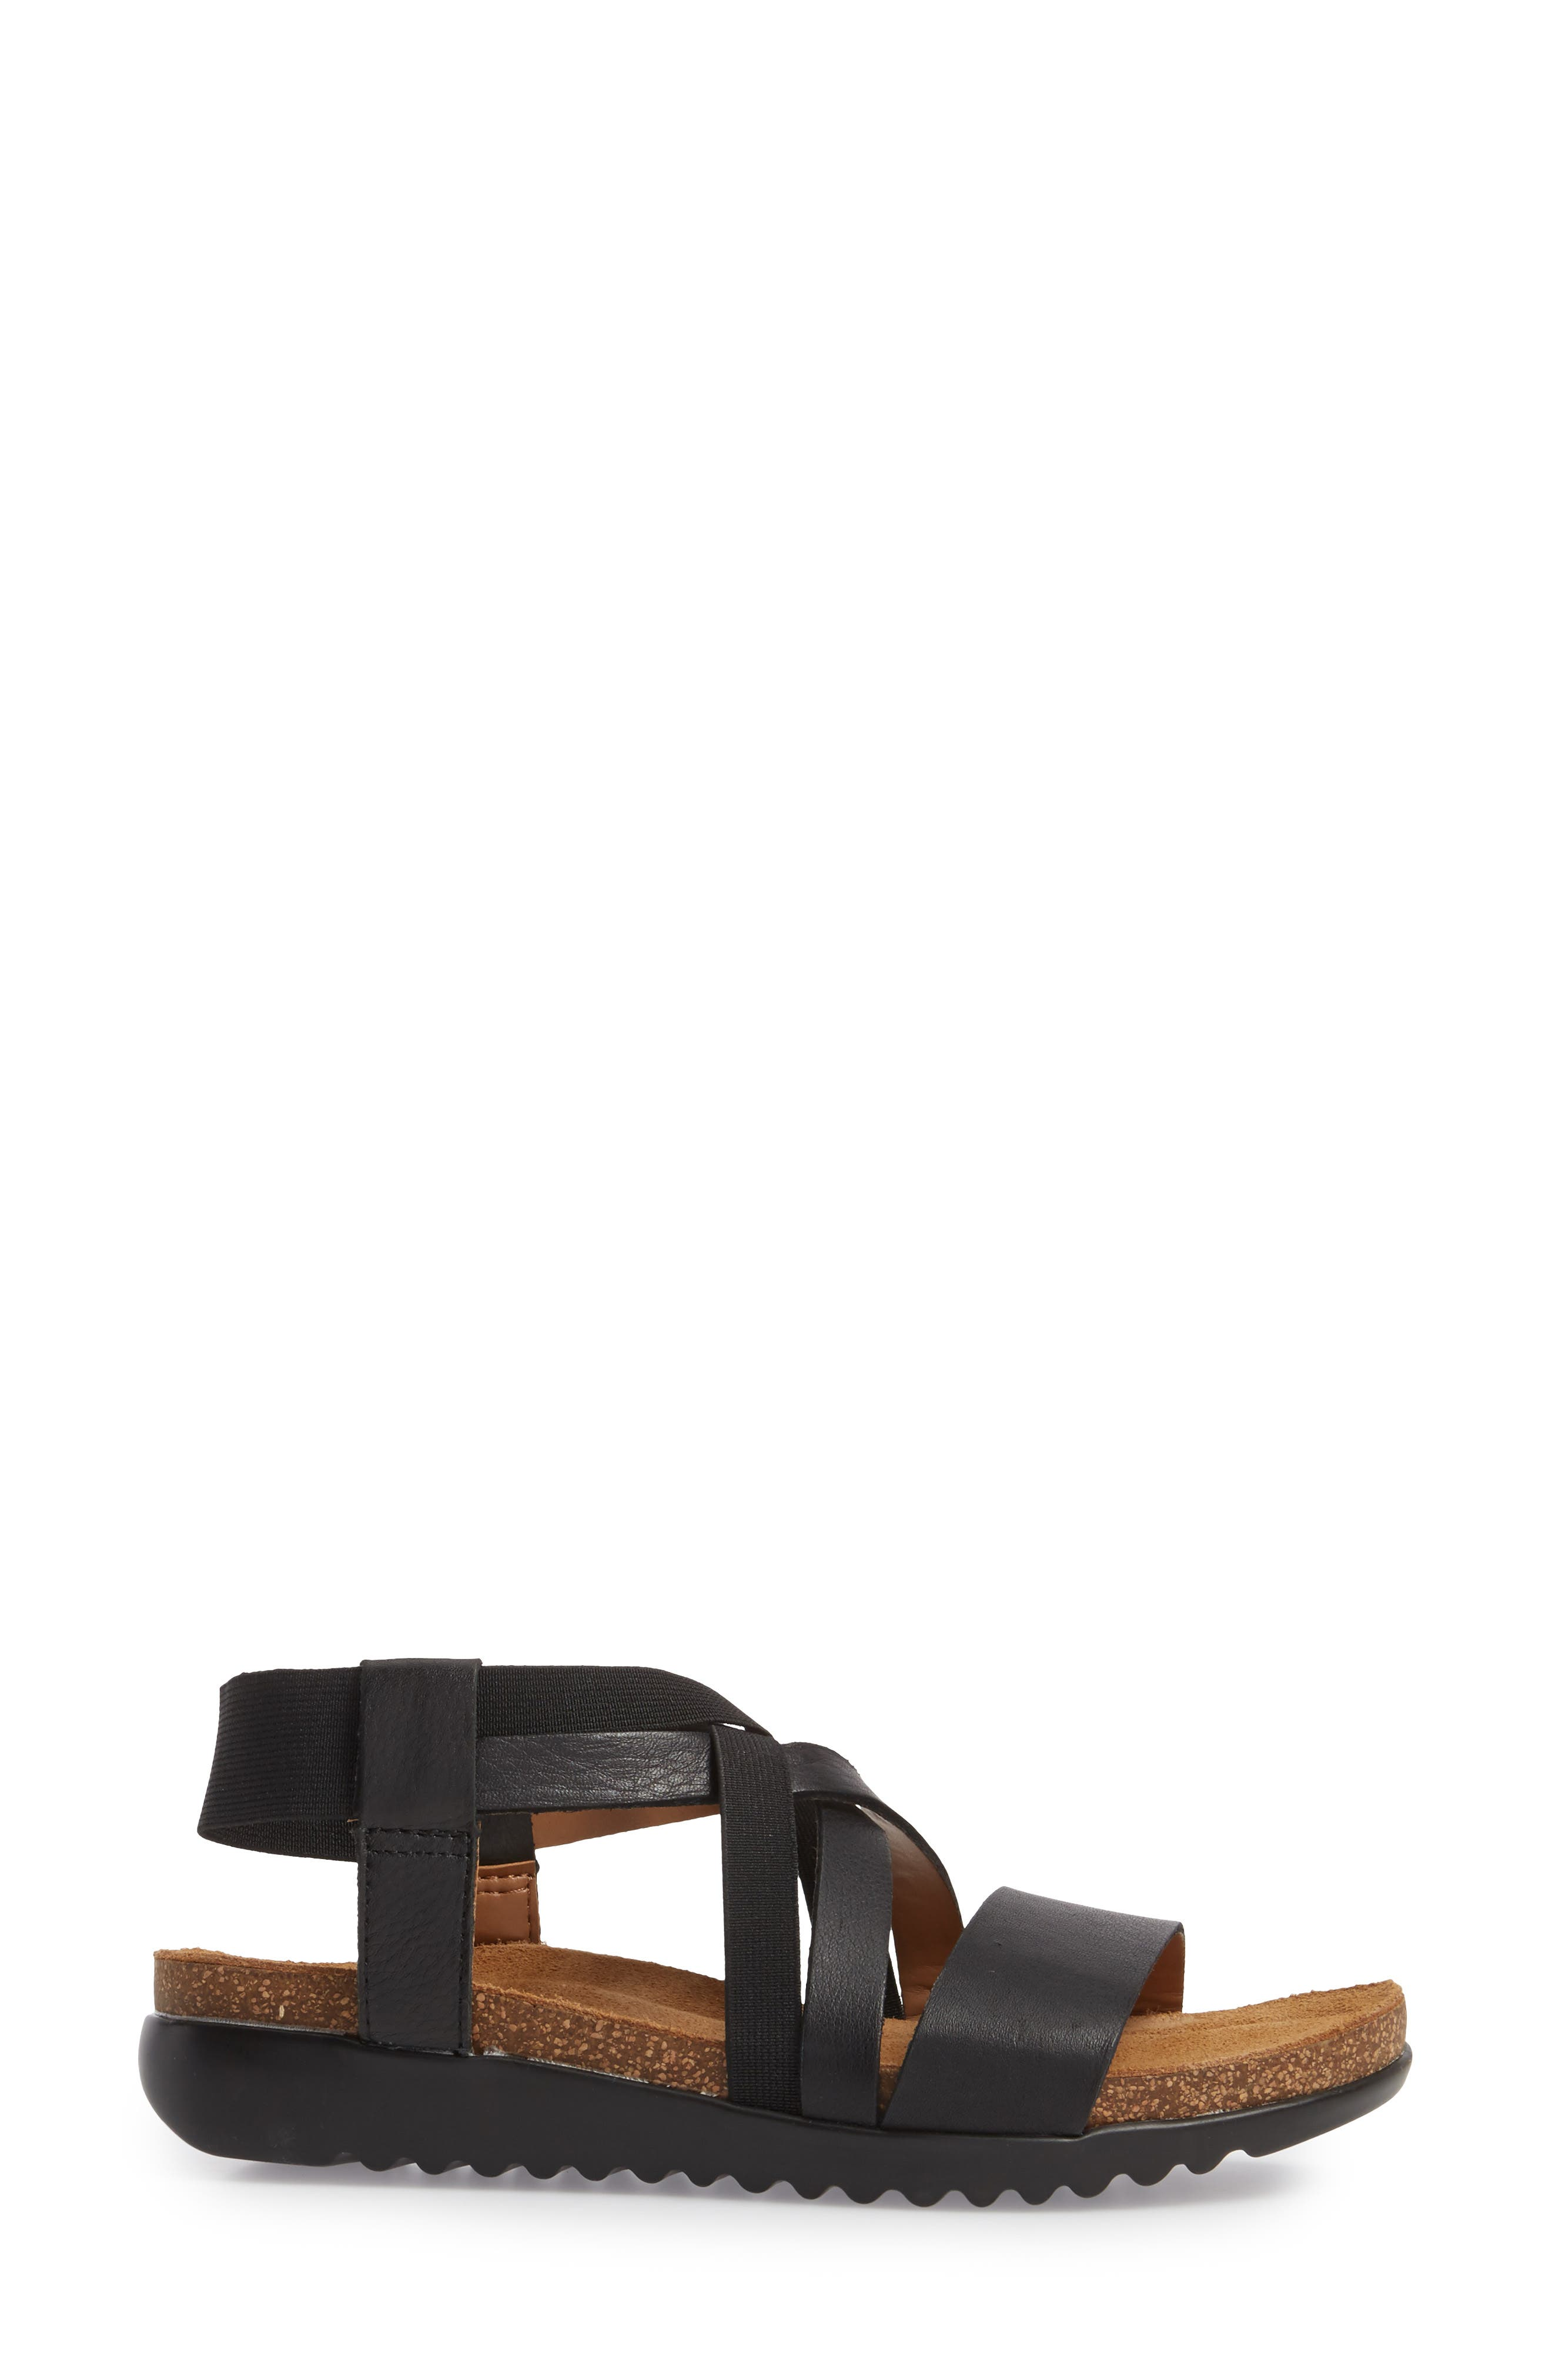 COMFORTIVA,                             Eva Sandal,                             Alternate thumbnail 3, color,                             001